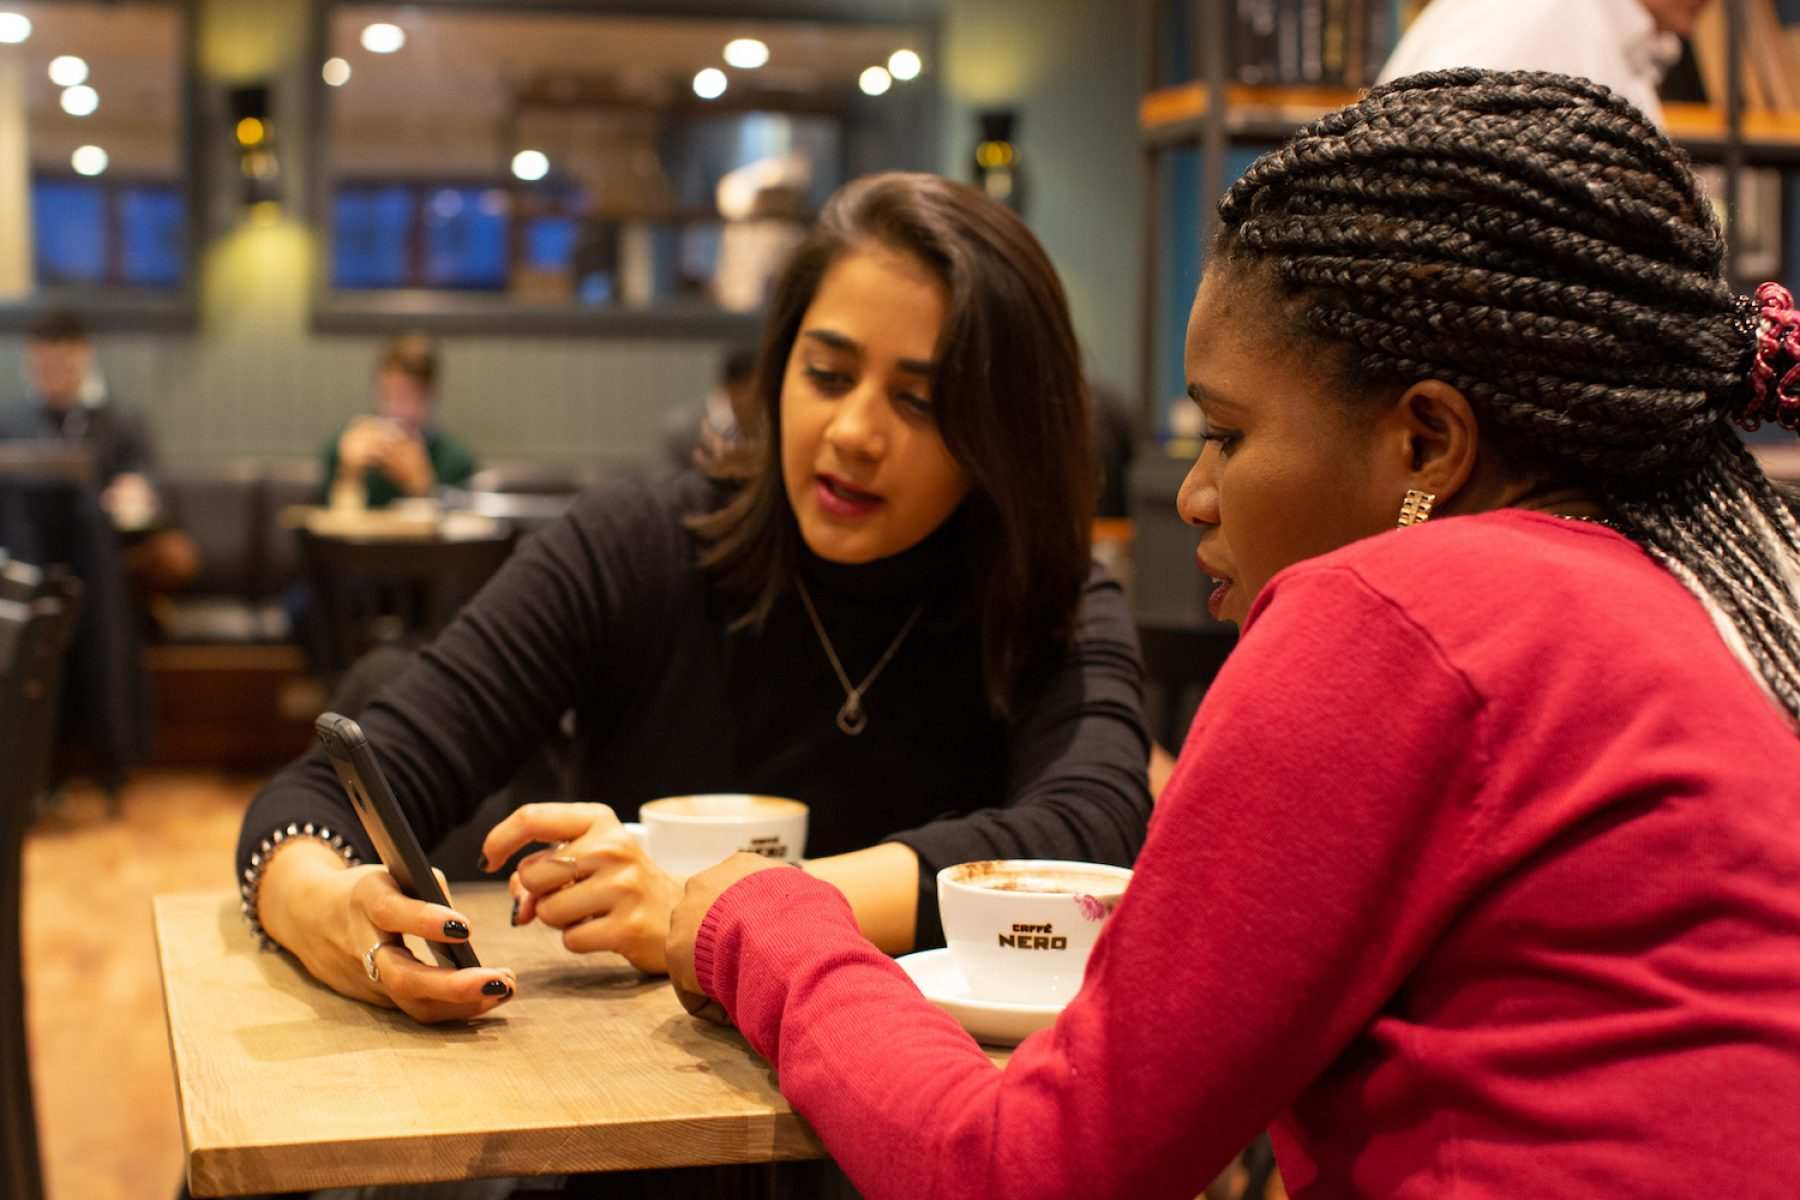 Image for Social enterprise connects business women and refugee women in London